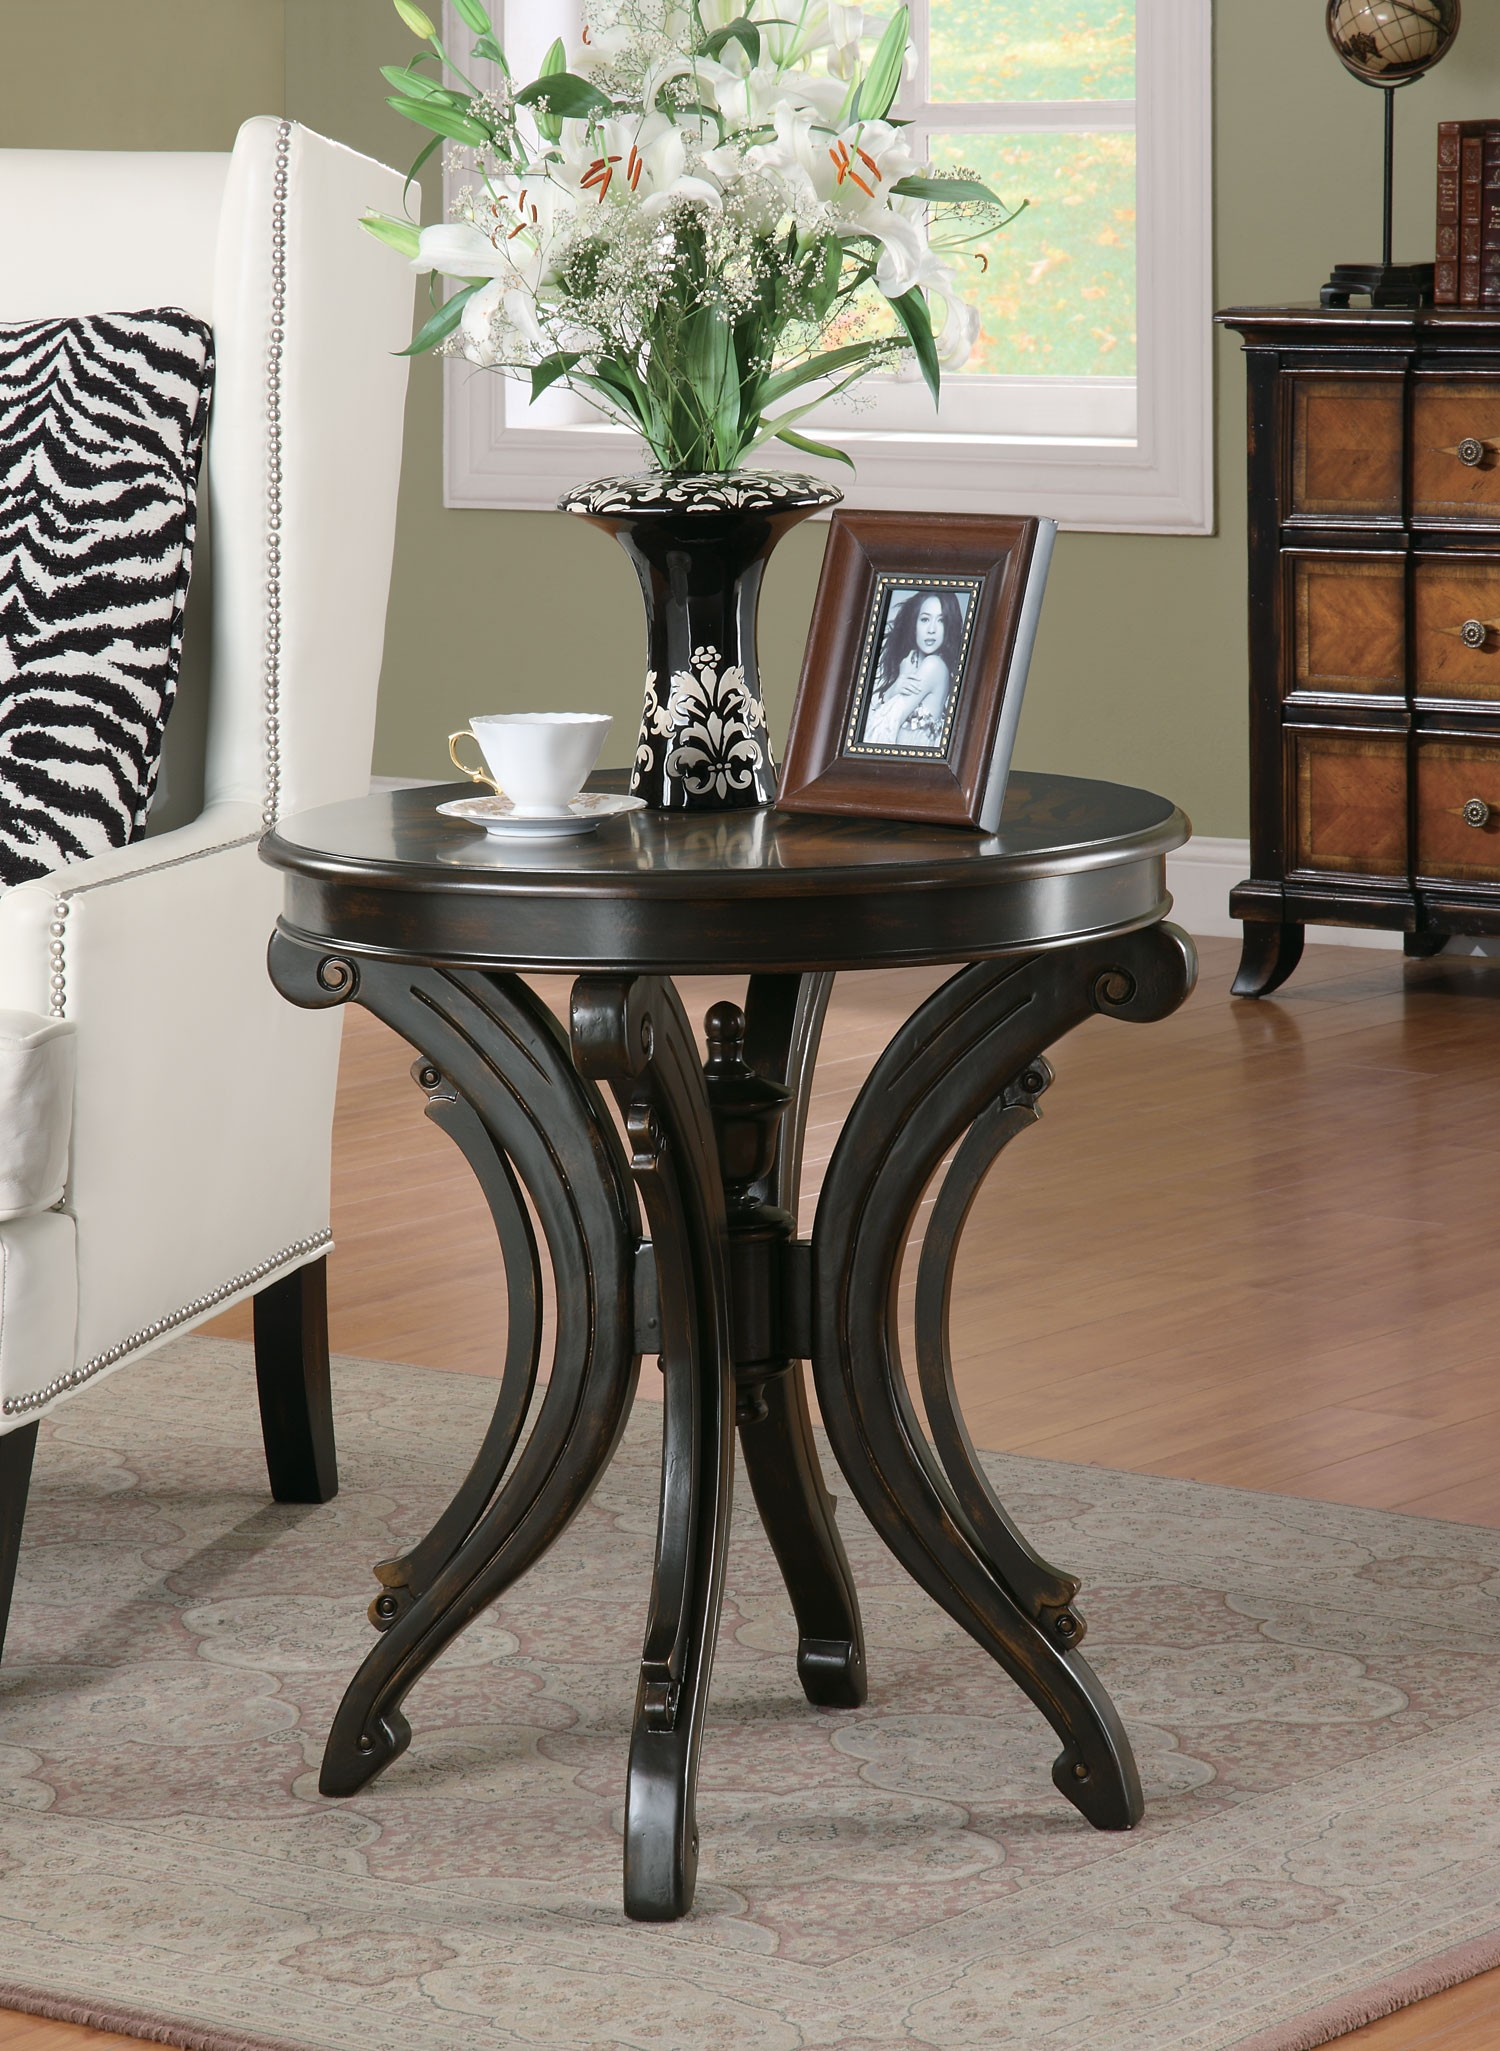 round end table with animal print alexander kat furniture painted wood accent top scrolled base rustic modern coffee marble inch decorator pottery lamps piece glass set white and